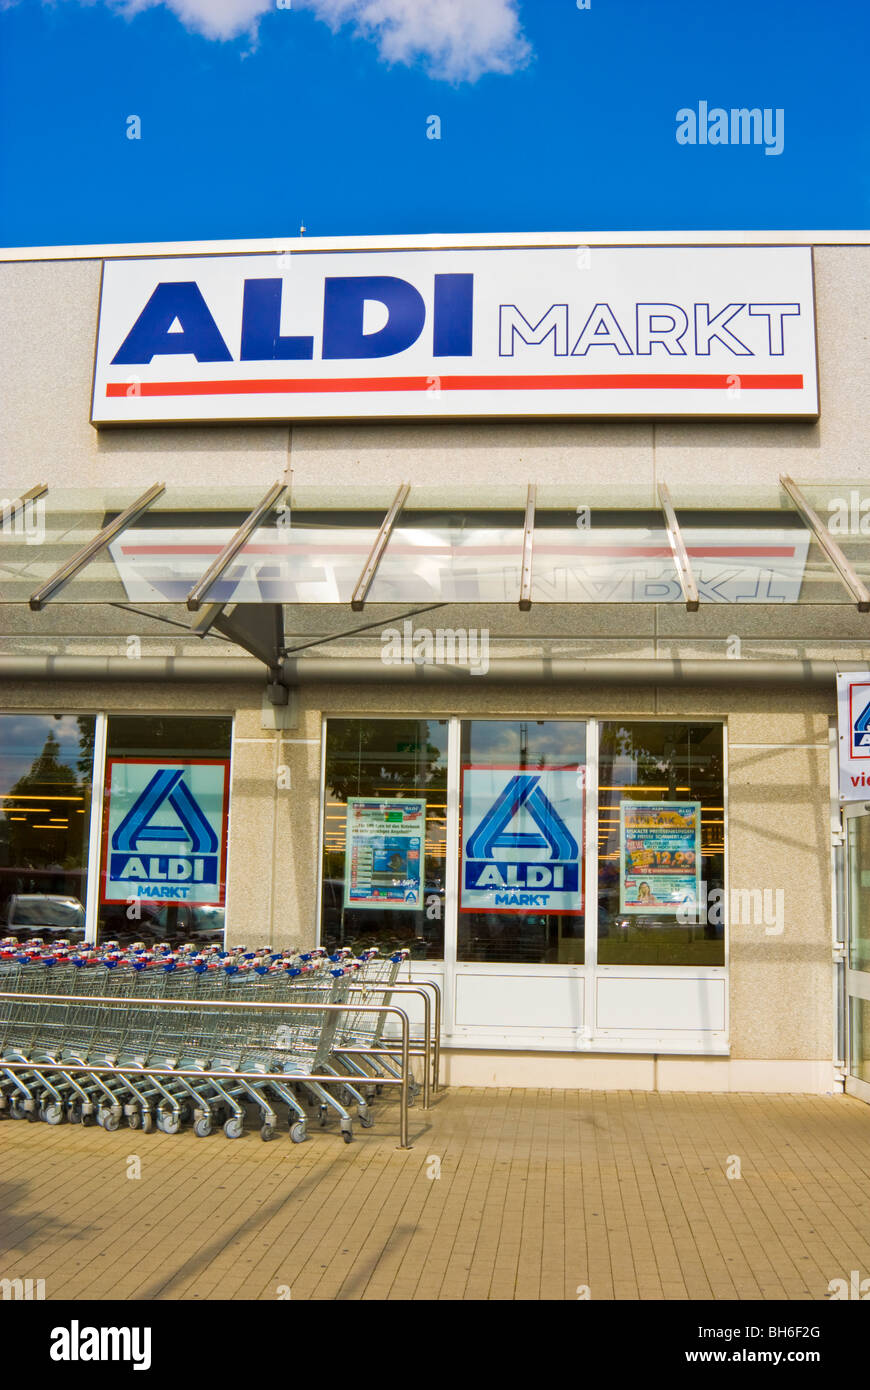 Entrance of an Aldi discount food and grocery store, Germany